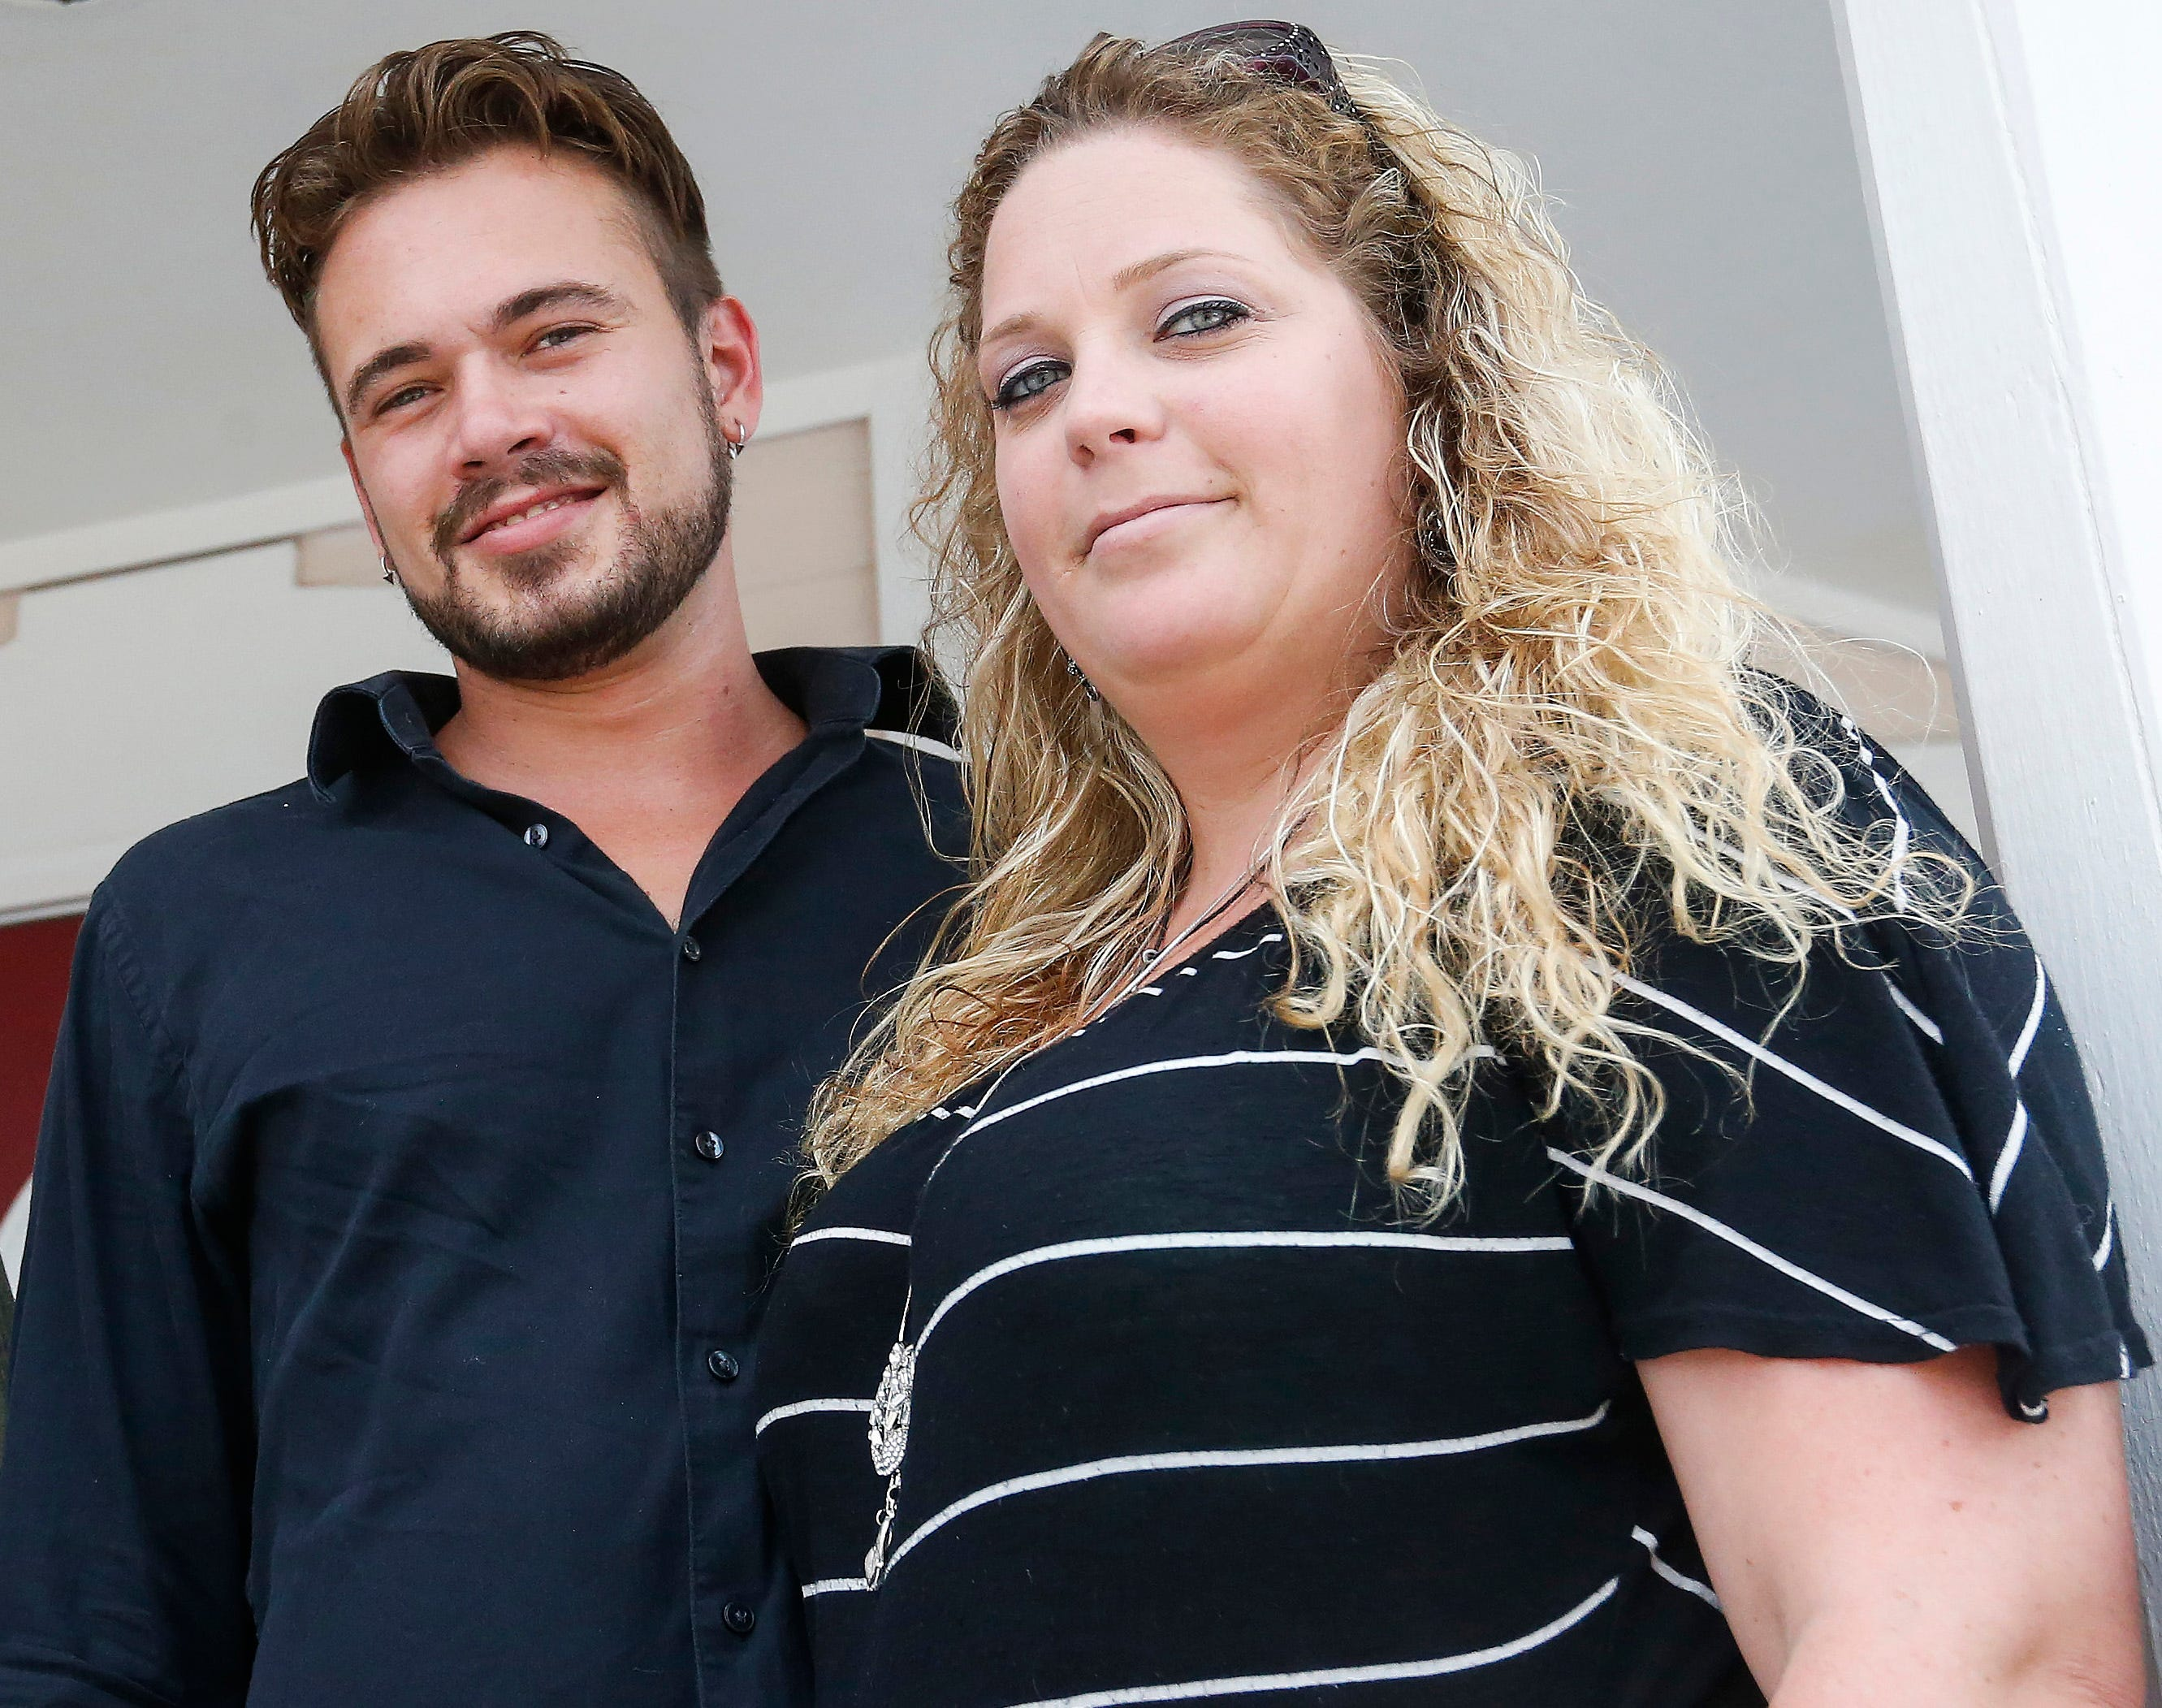 Queen Anne Motel managers Jenn and Jordan Clark have made vast improvements to safety and security at the motel since taking over.